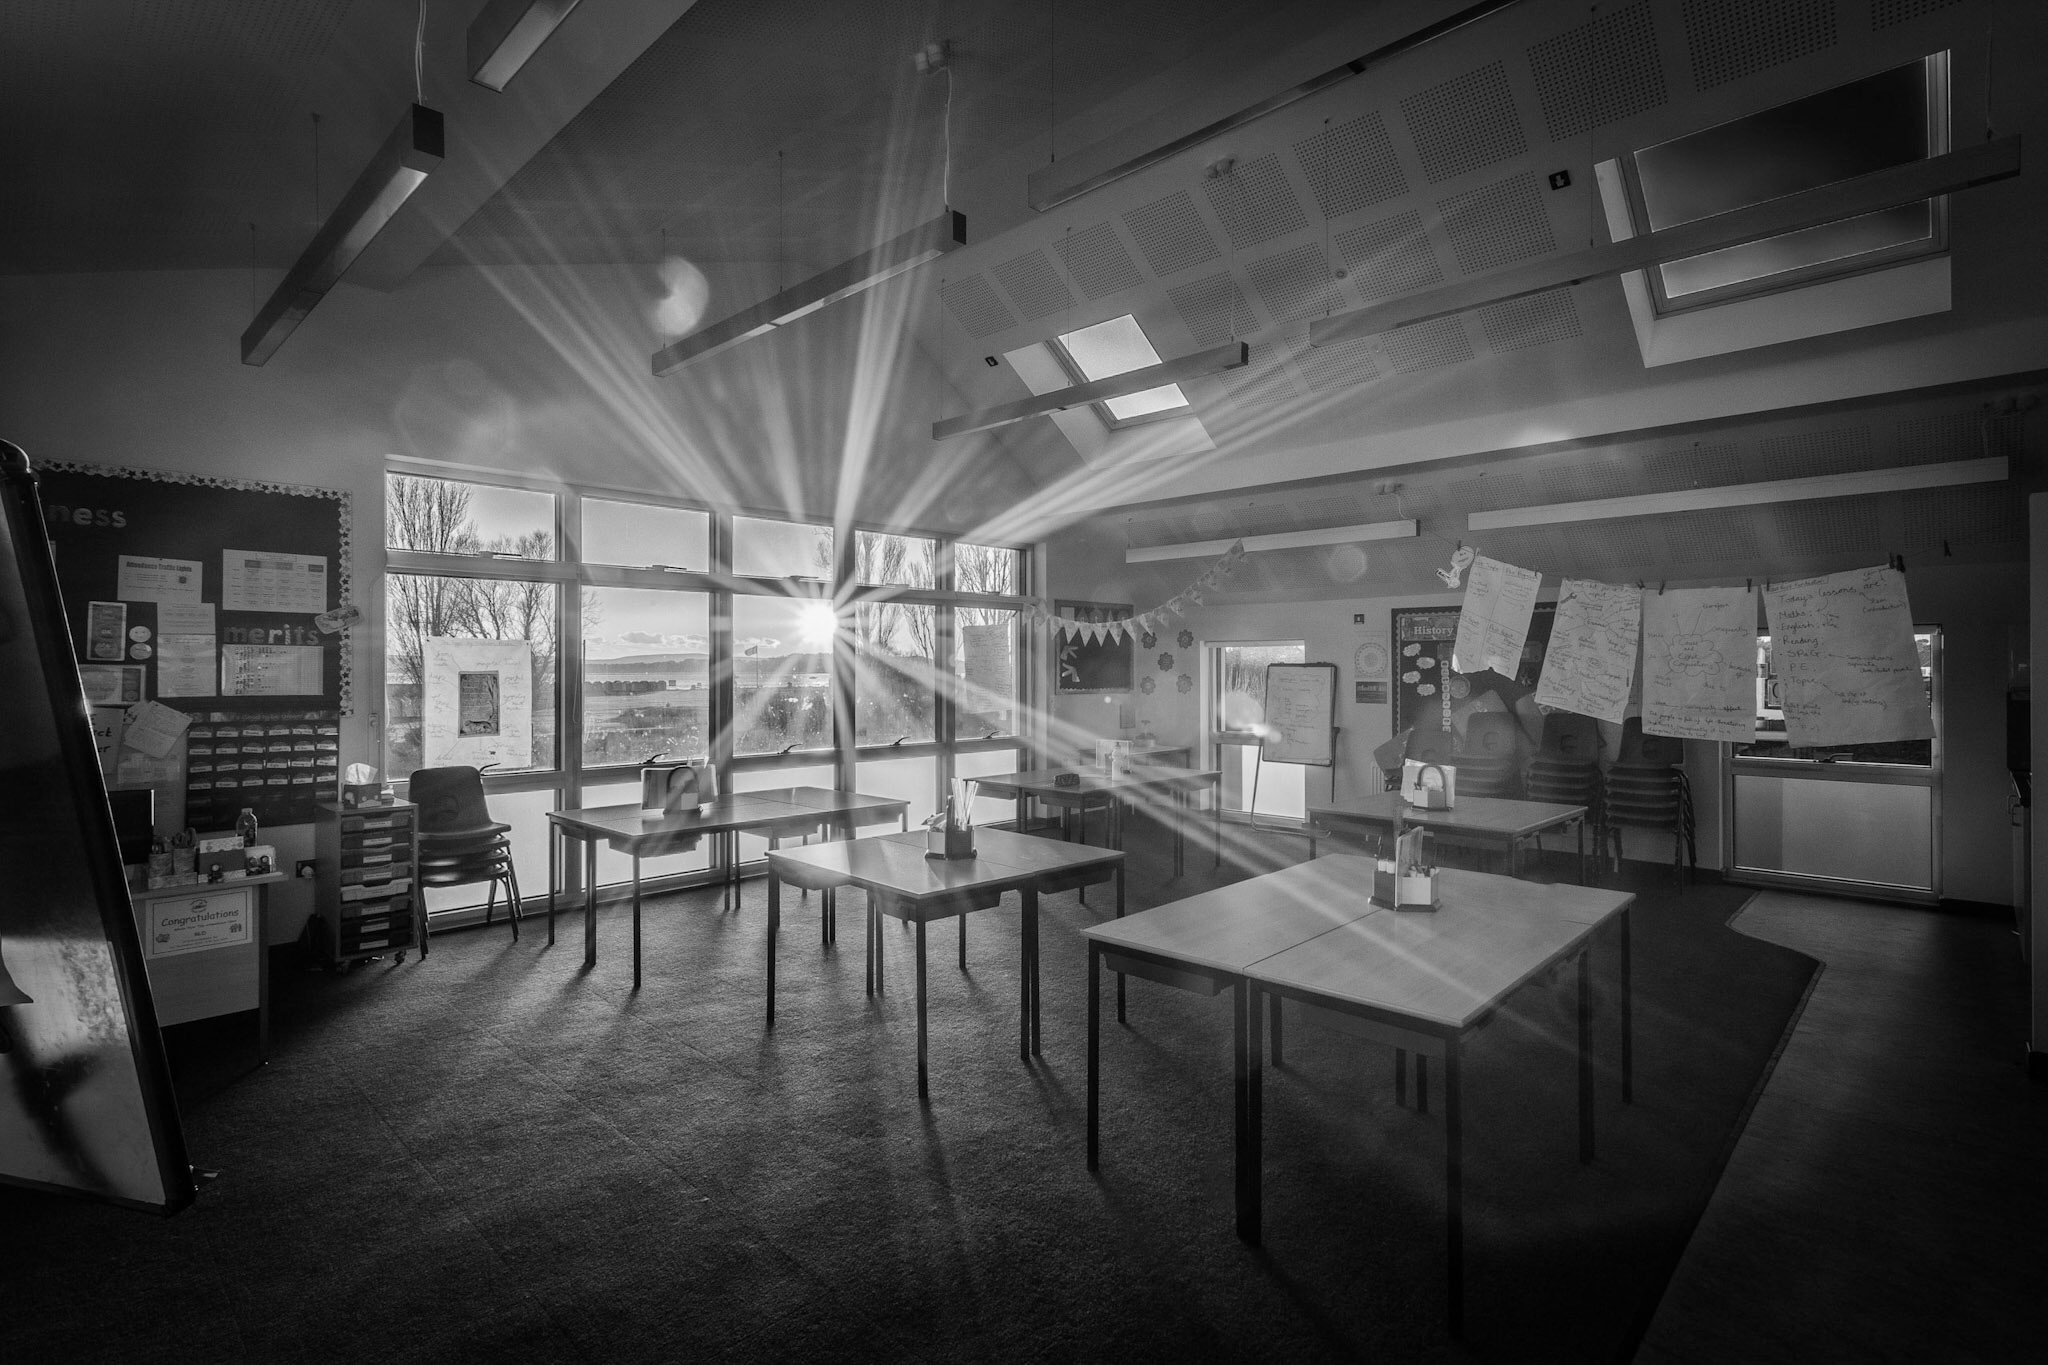 Black and white picture of a school classroom